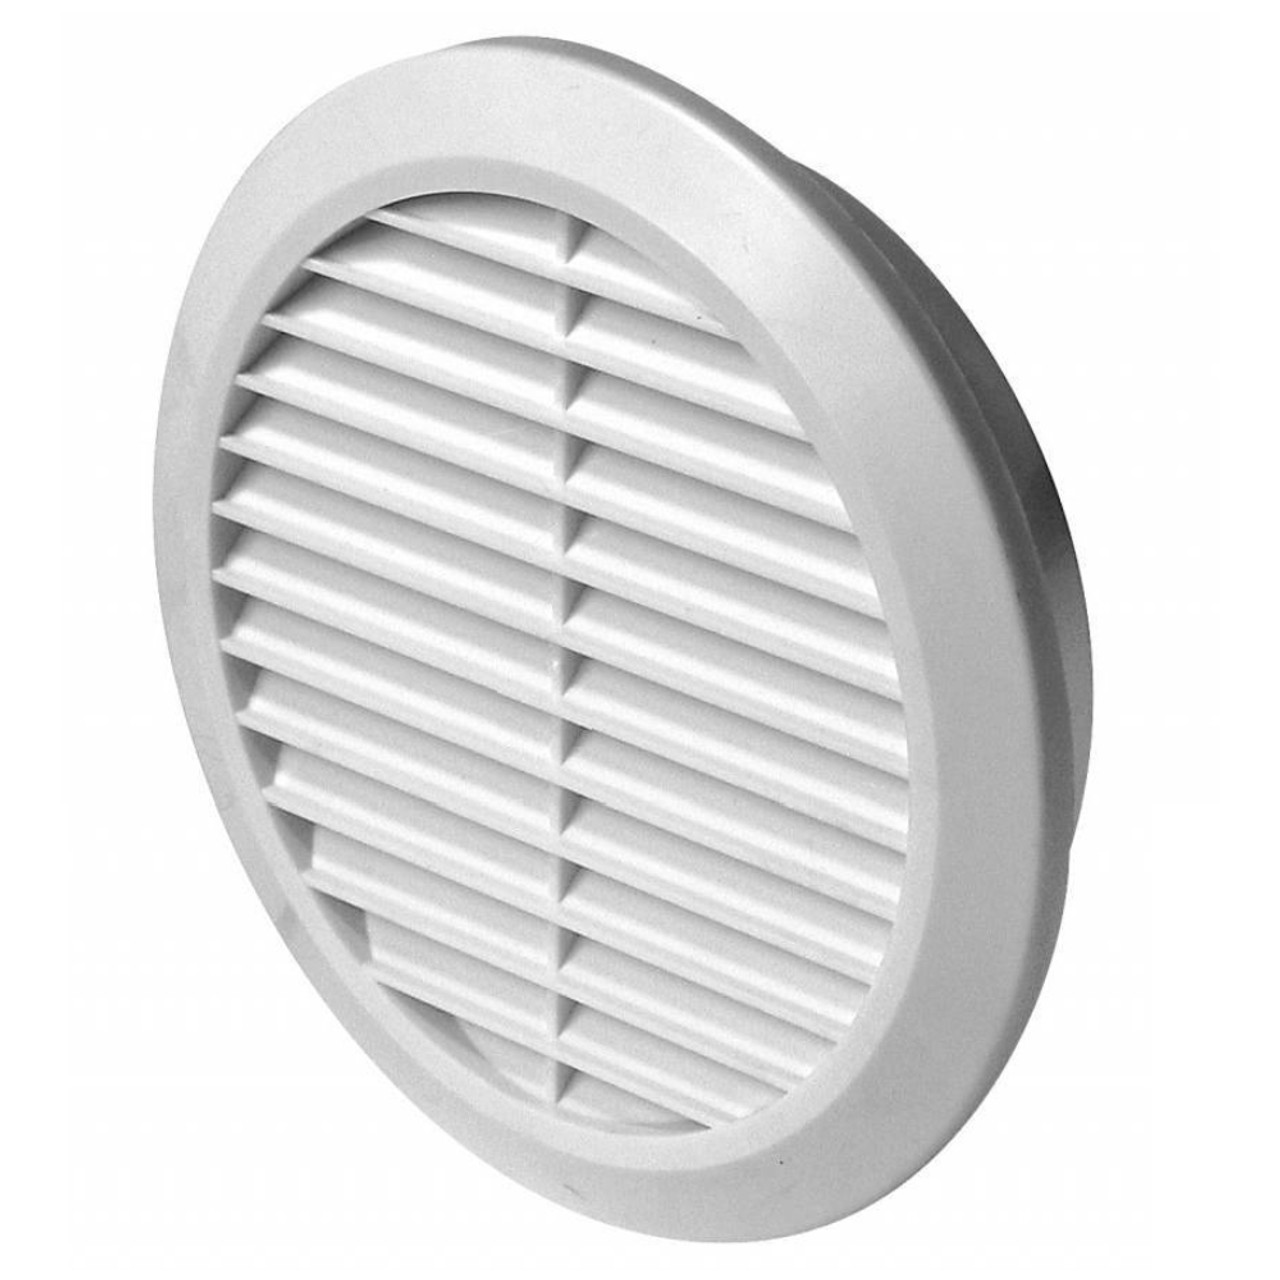 Prima 100-150mm Adjustable Wall Ventilation Grille Cover with Anti Insect NR-22